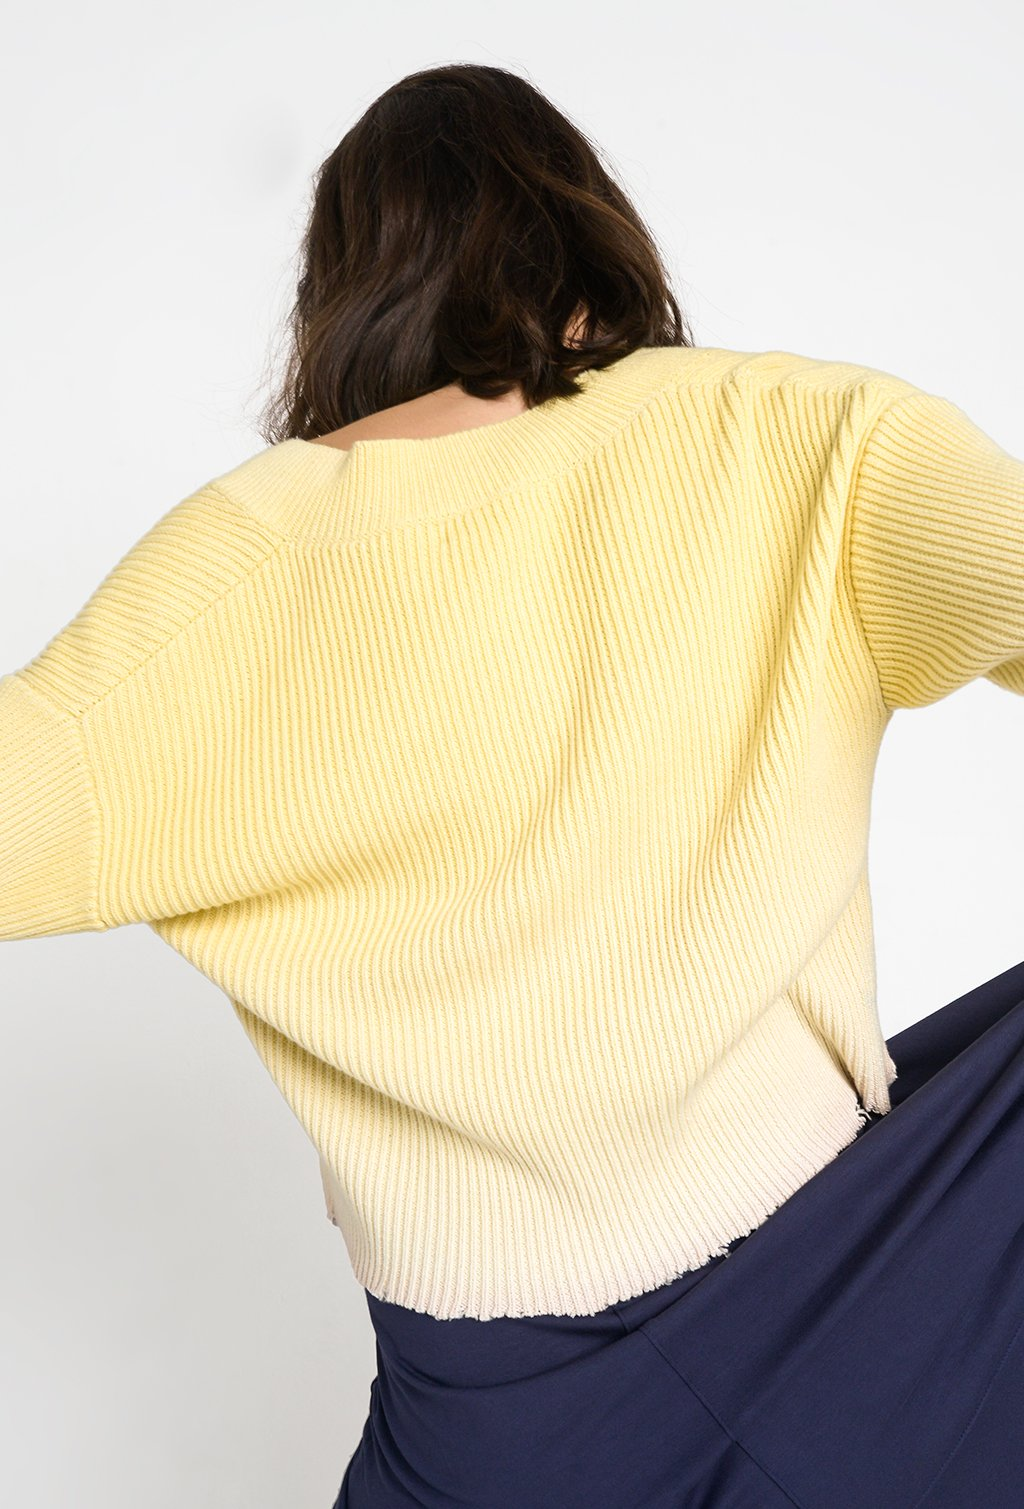 BACK YELLOW SWEATER